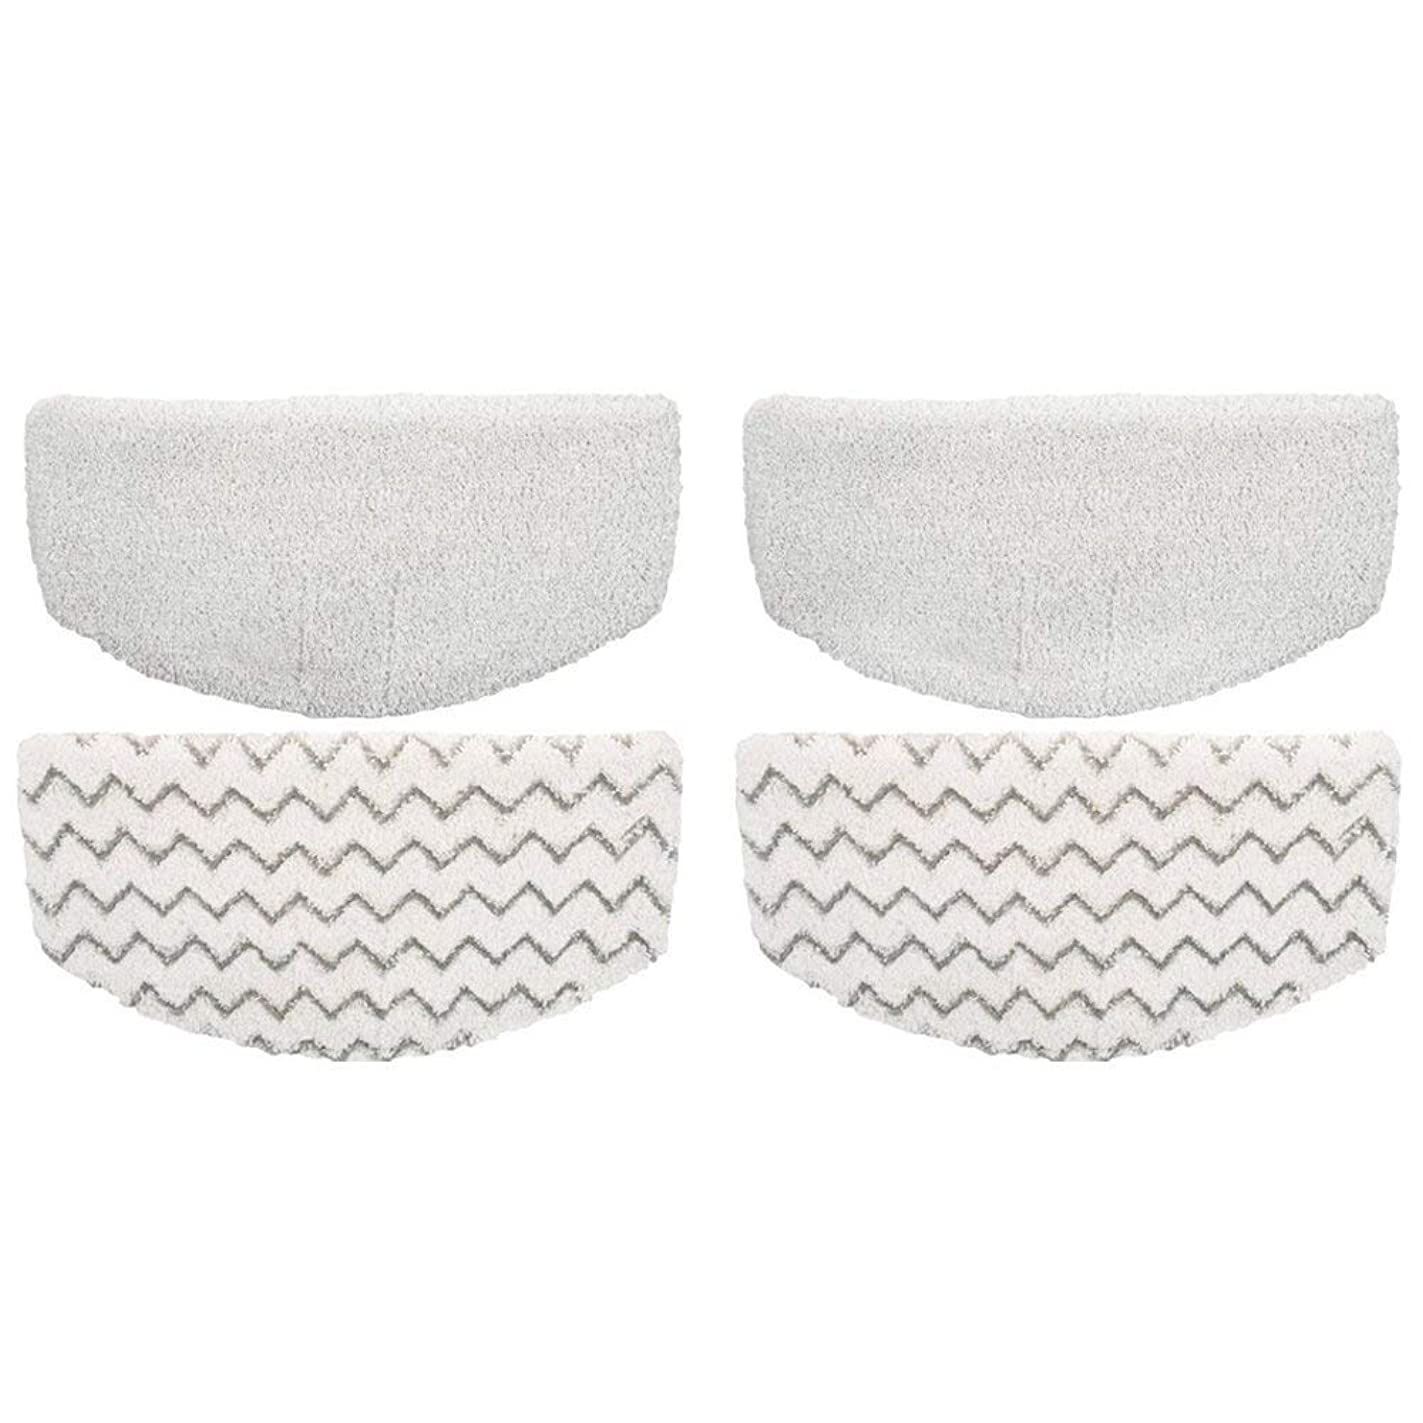 Ximoon 4 Steam Mop Pads Fits Bissell PowerFresh 1940 1440 1544 Series; Model 19402, 19404, 19408, 1940A, 1940Q, 1940T, 1940W